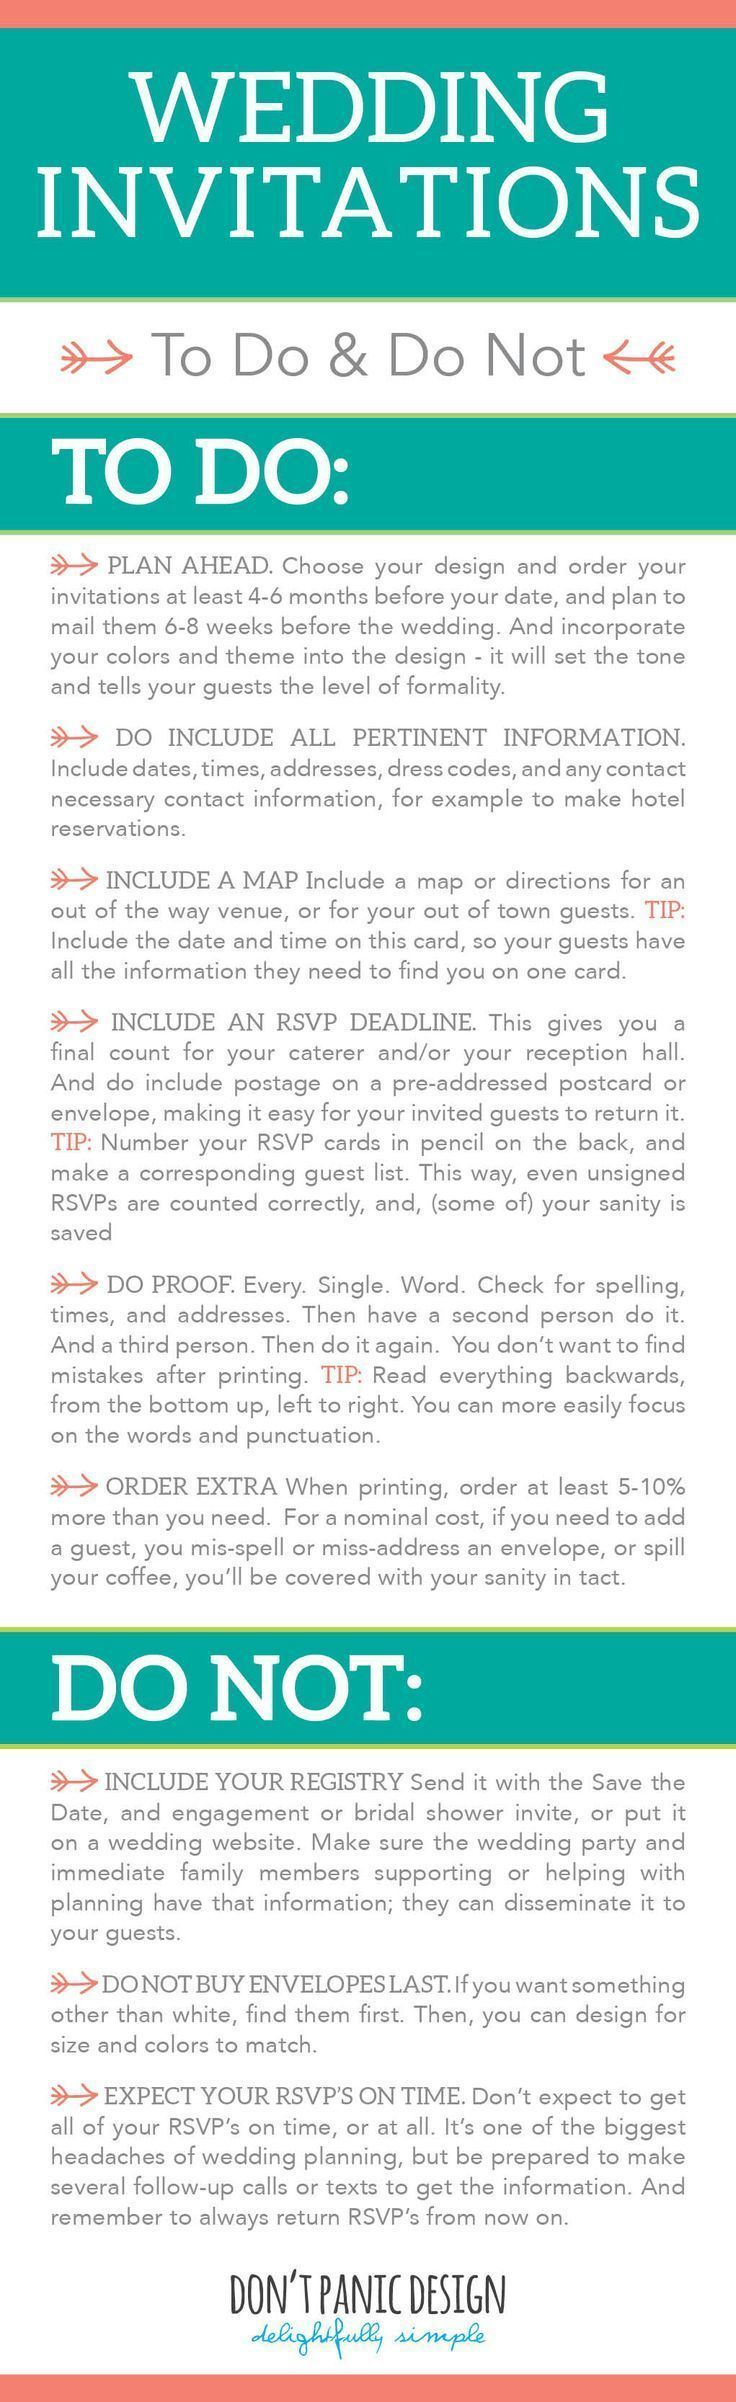 DIY Wedding Invitation - A guide on what to do and what not to do ...